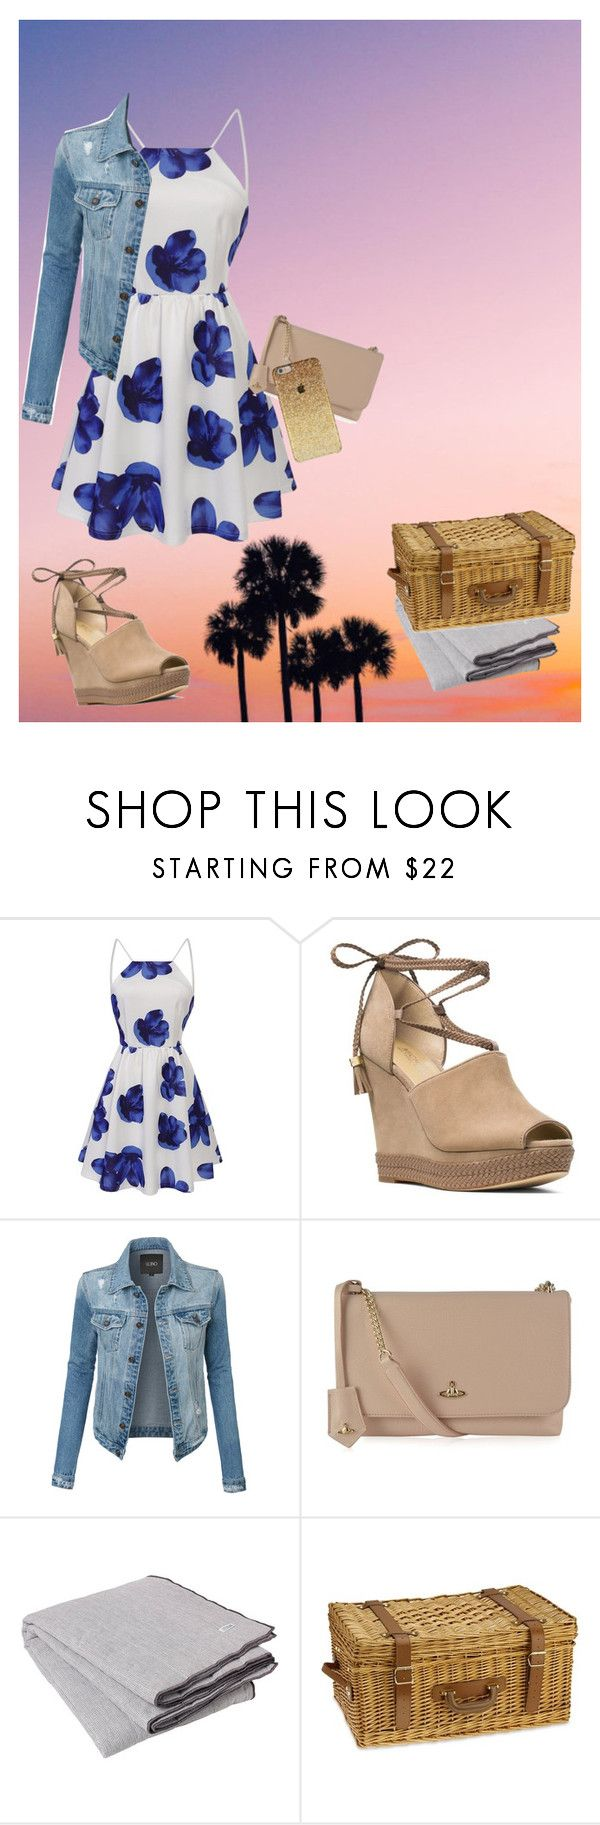 """""""Picnic Date Outfit"""" by emoji678 ❤ liked on Polyvore featuring MICHAEL Michael Kors, LE3NO, Vivienne Westwood, Broste Copenhagen and Williams-Sonoma"""